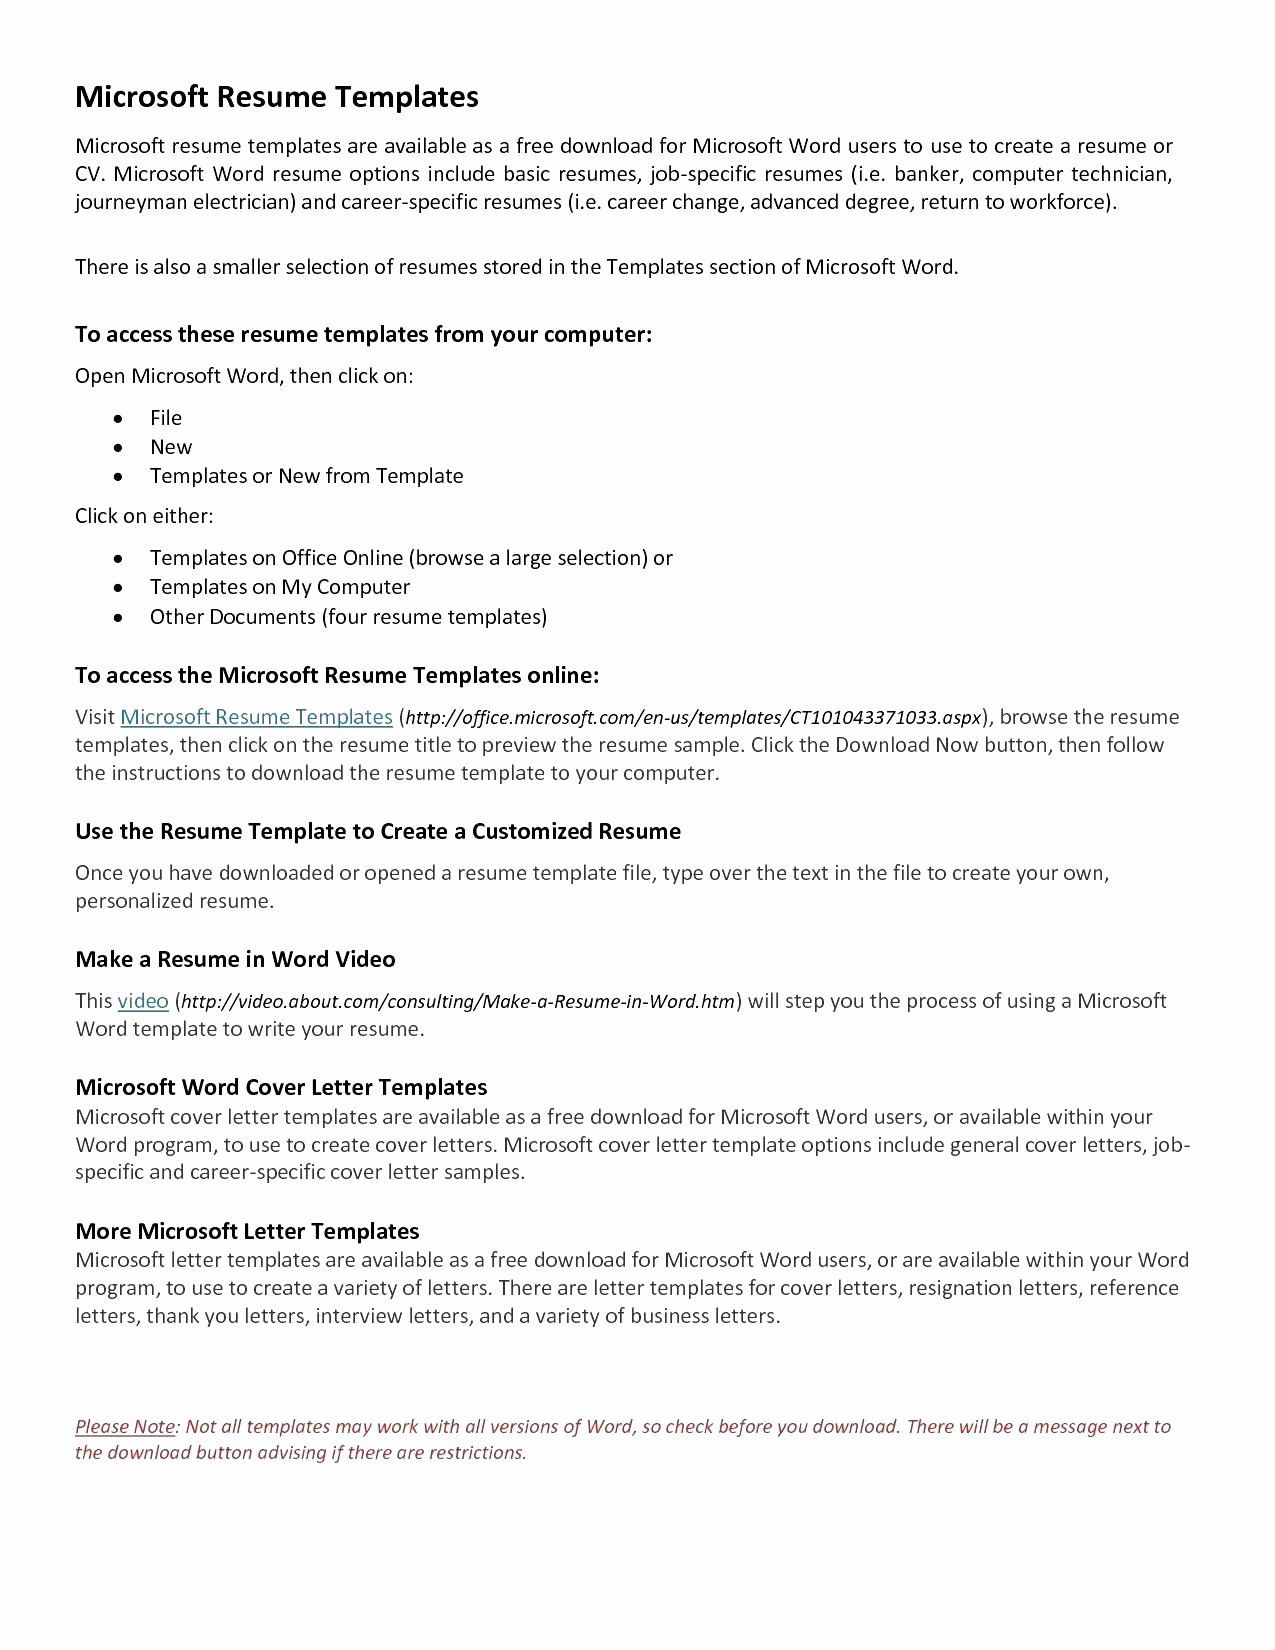 Free Employment Verification Letter Template - Free Cover Letter Templates for Resumes Fresh Resume Template